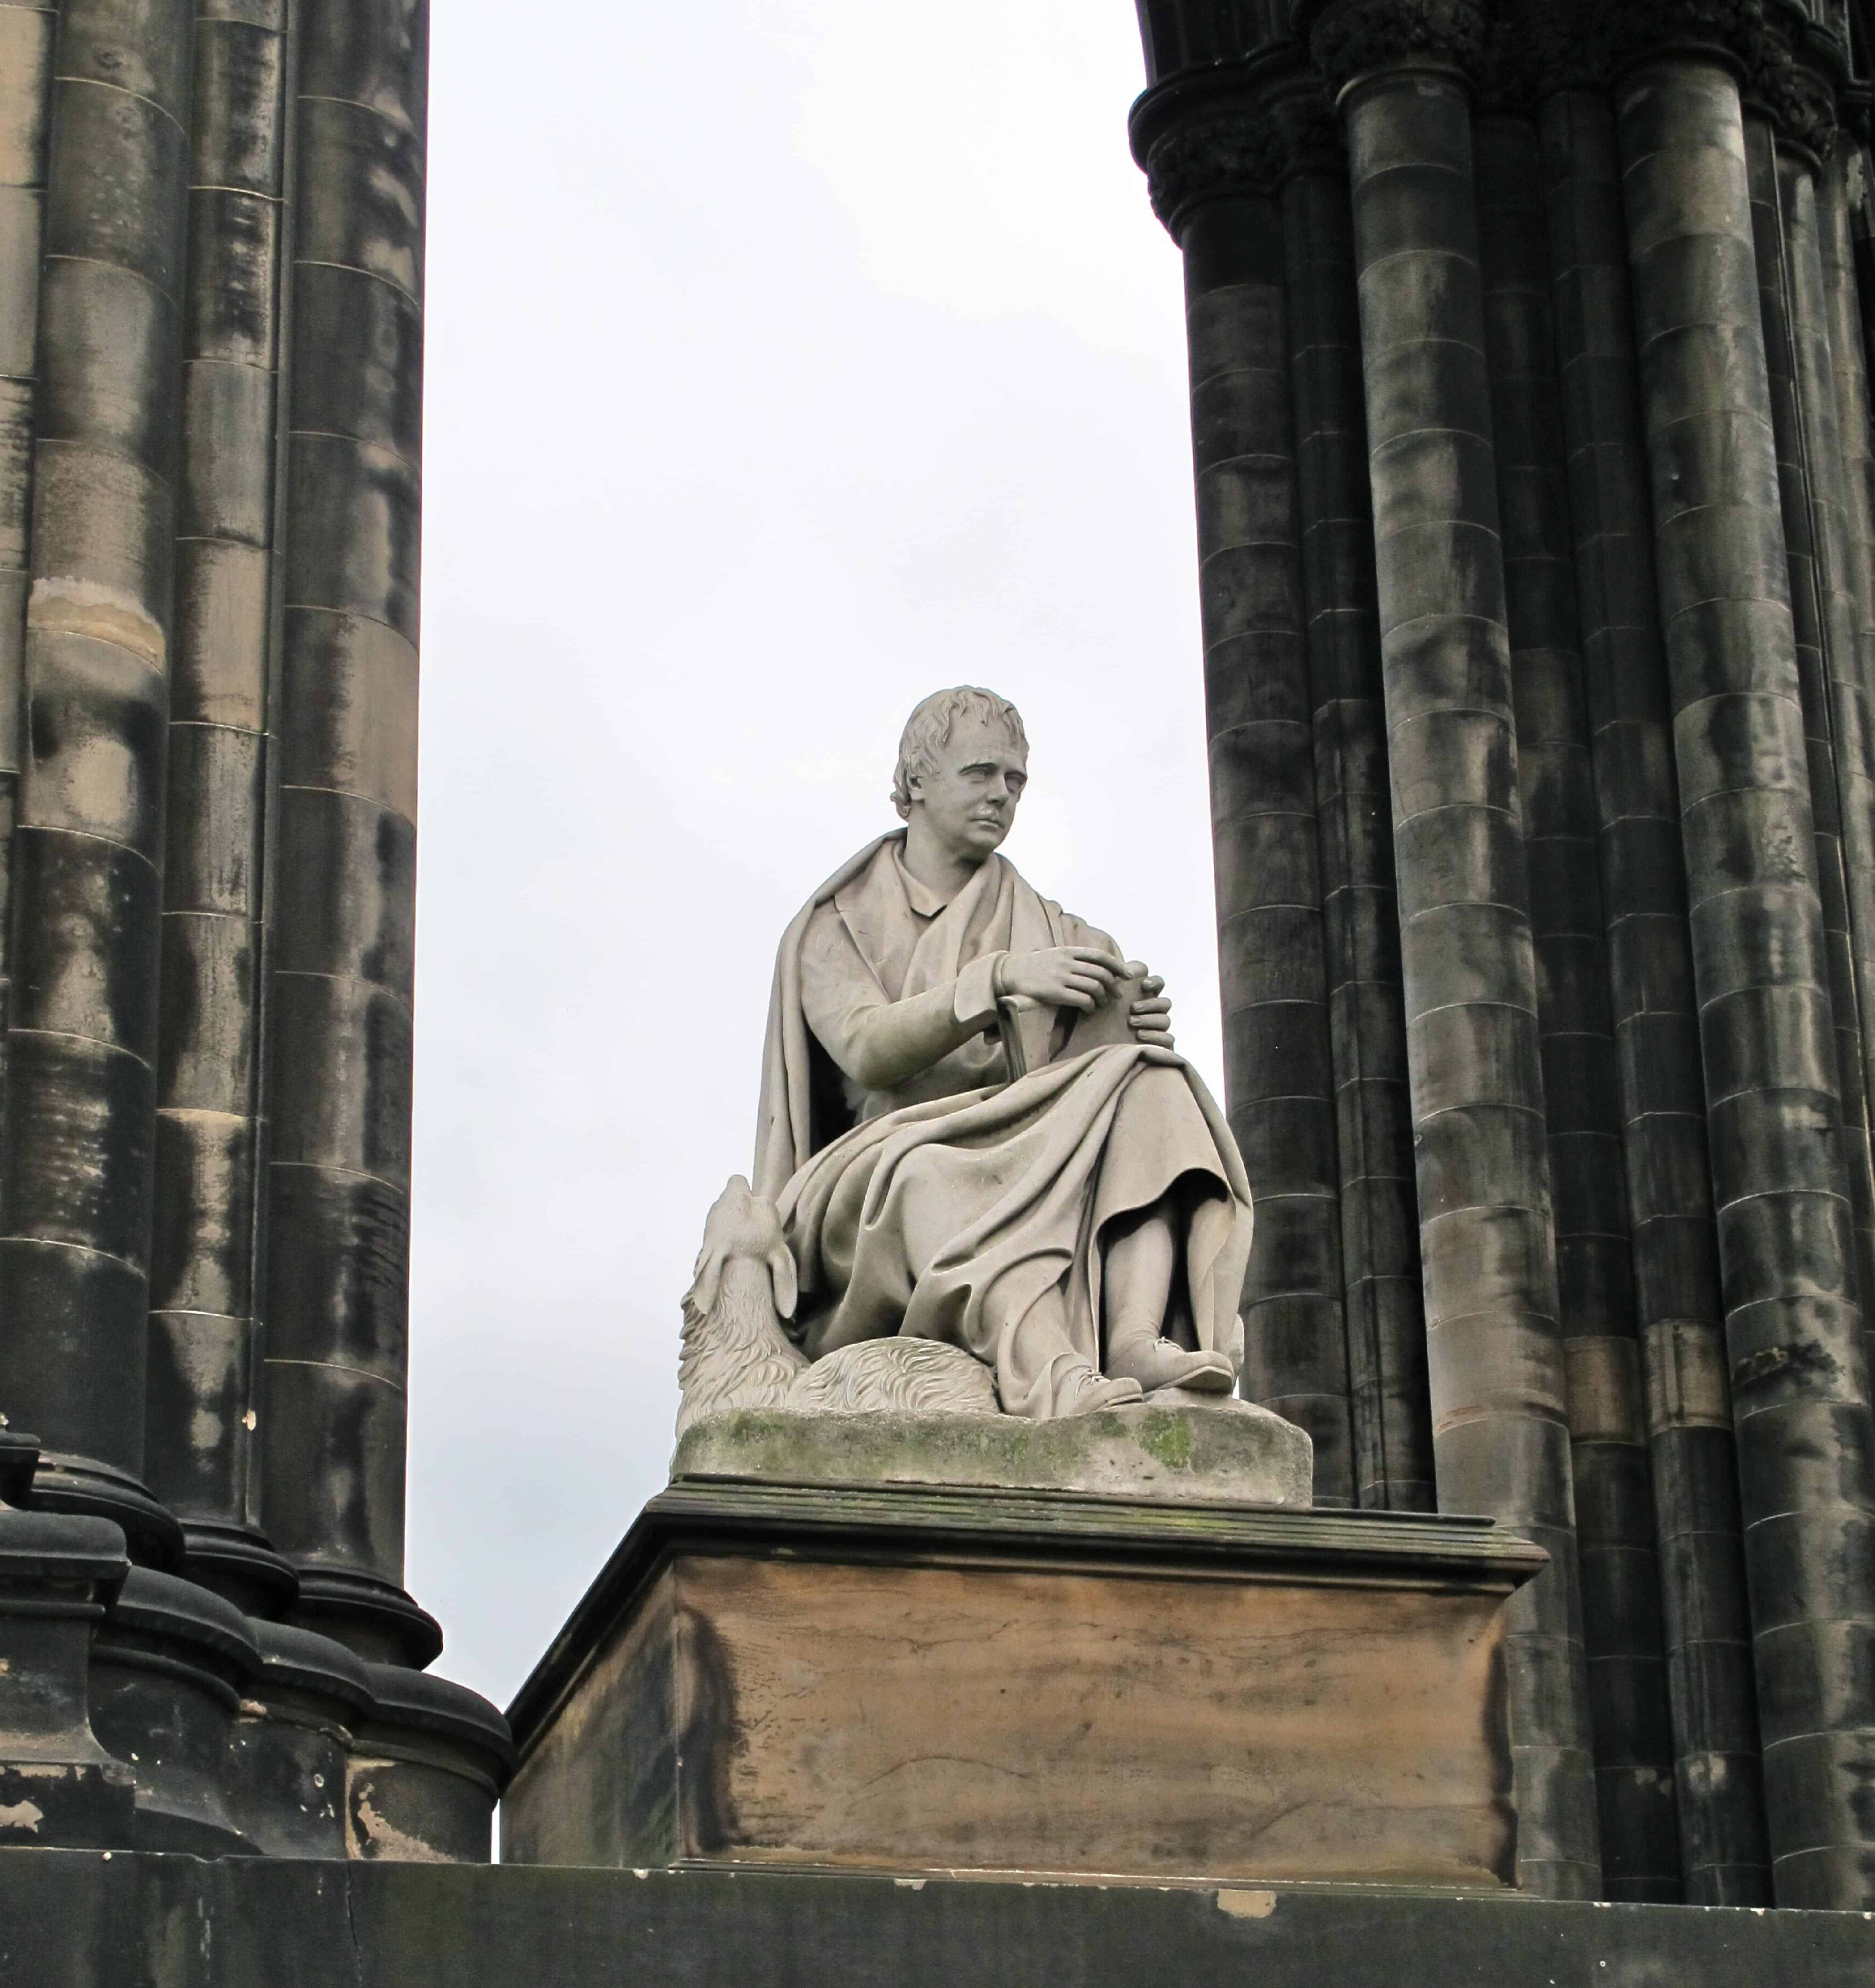 The Sir Walter Scott Monument